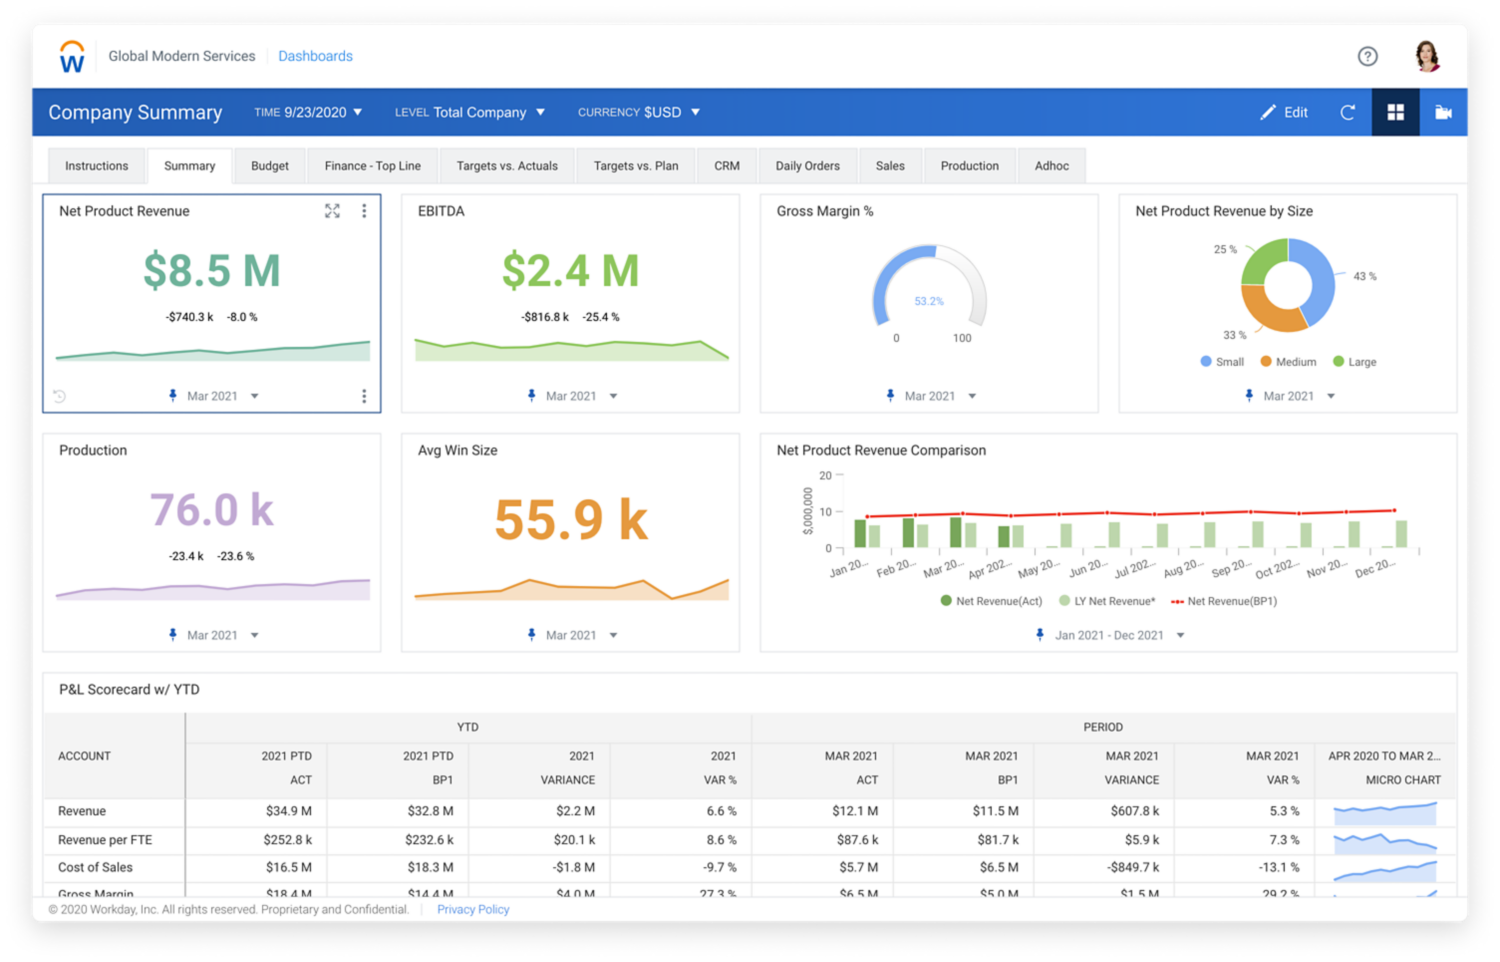 Operational planning dashboard in Workday Adaptive Planning software, showing numerical values and charts for financial planning.